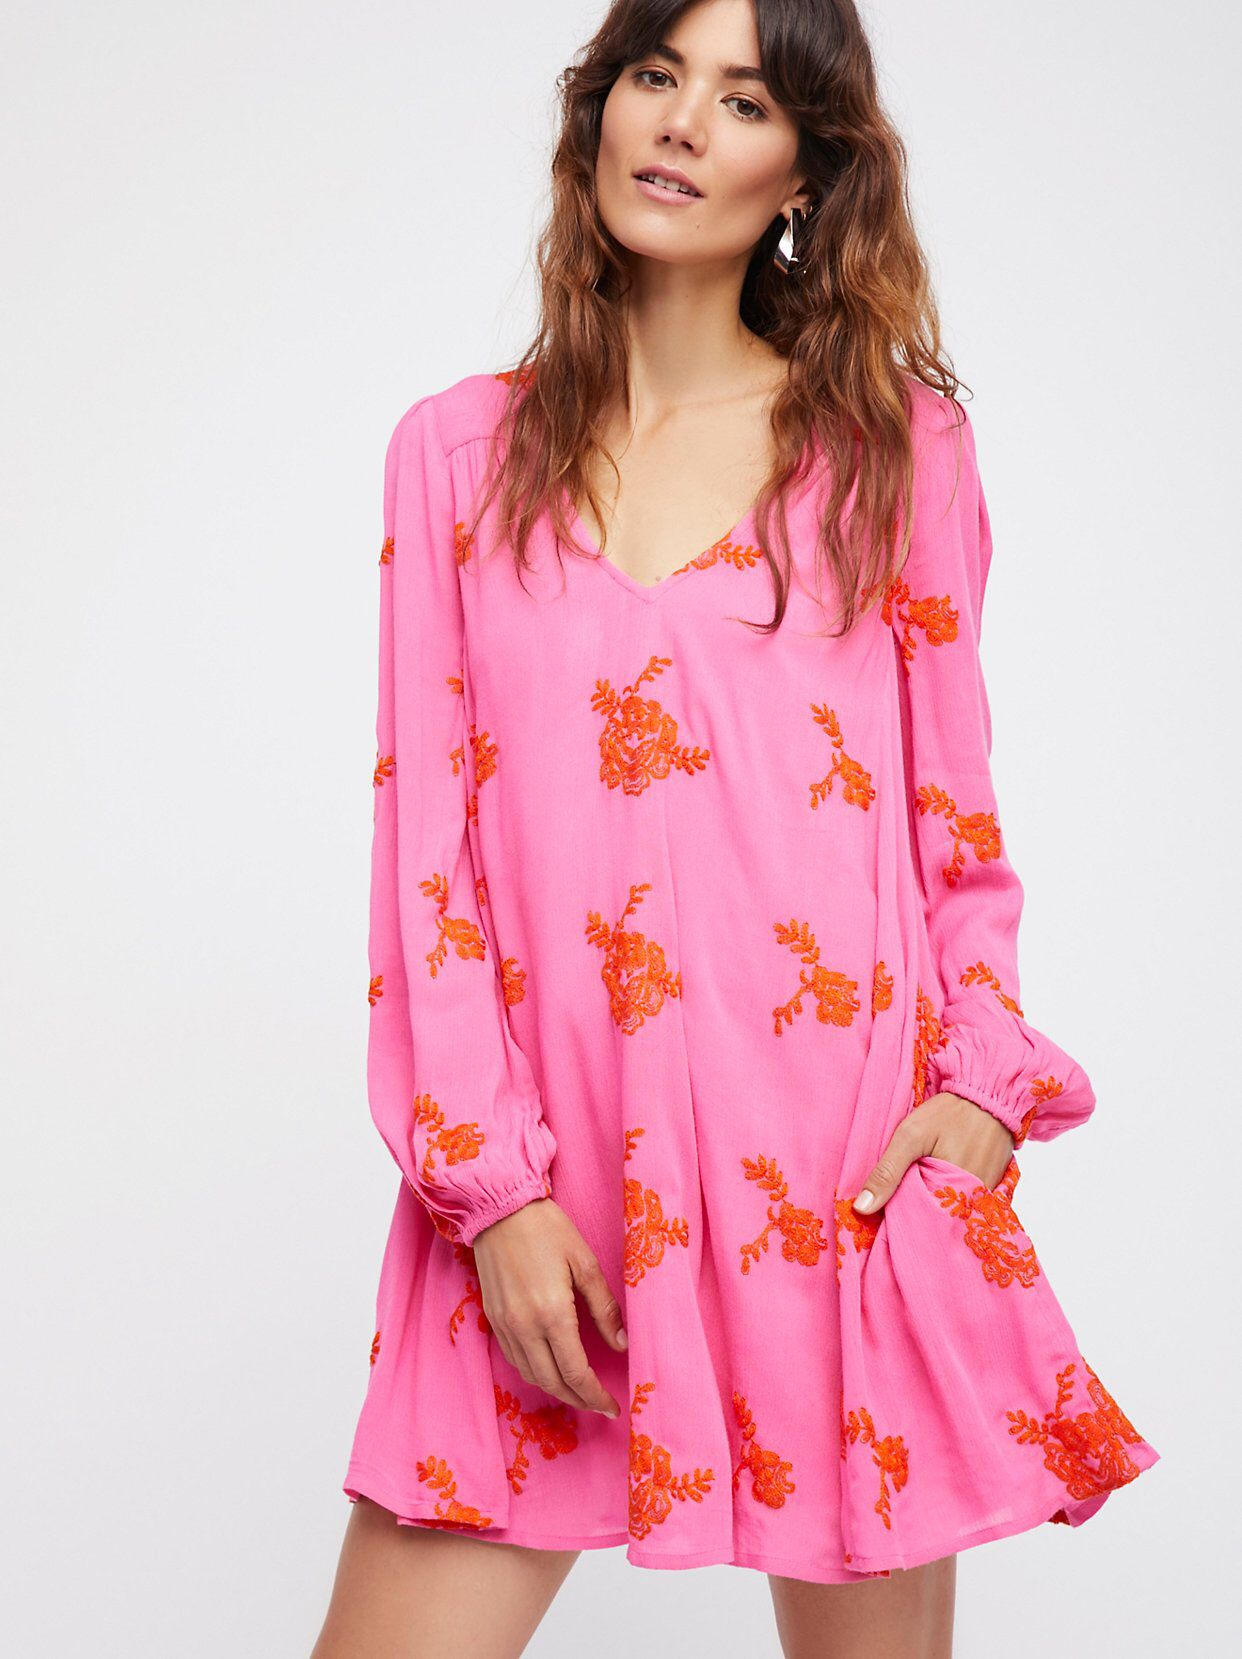 Free People Embroidered Austin Dress | Pintas, Femenino y Rosas